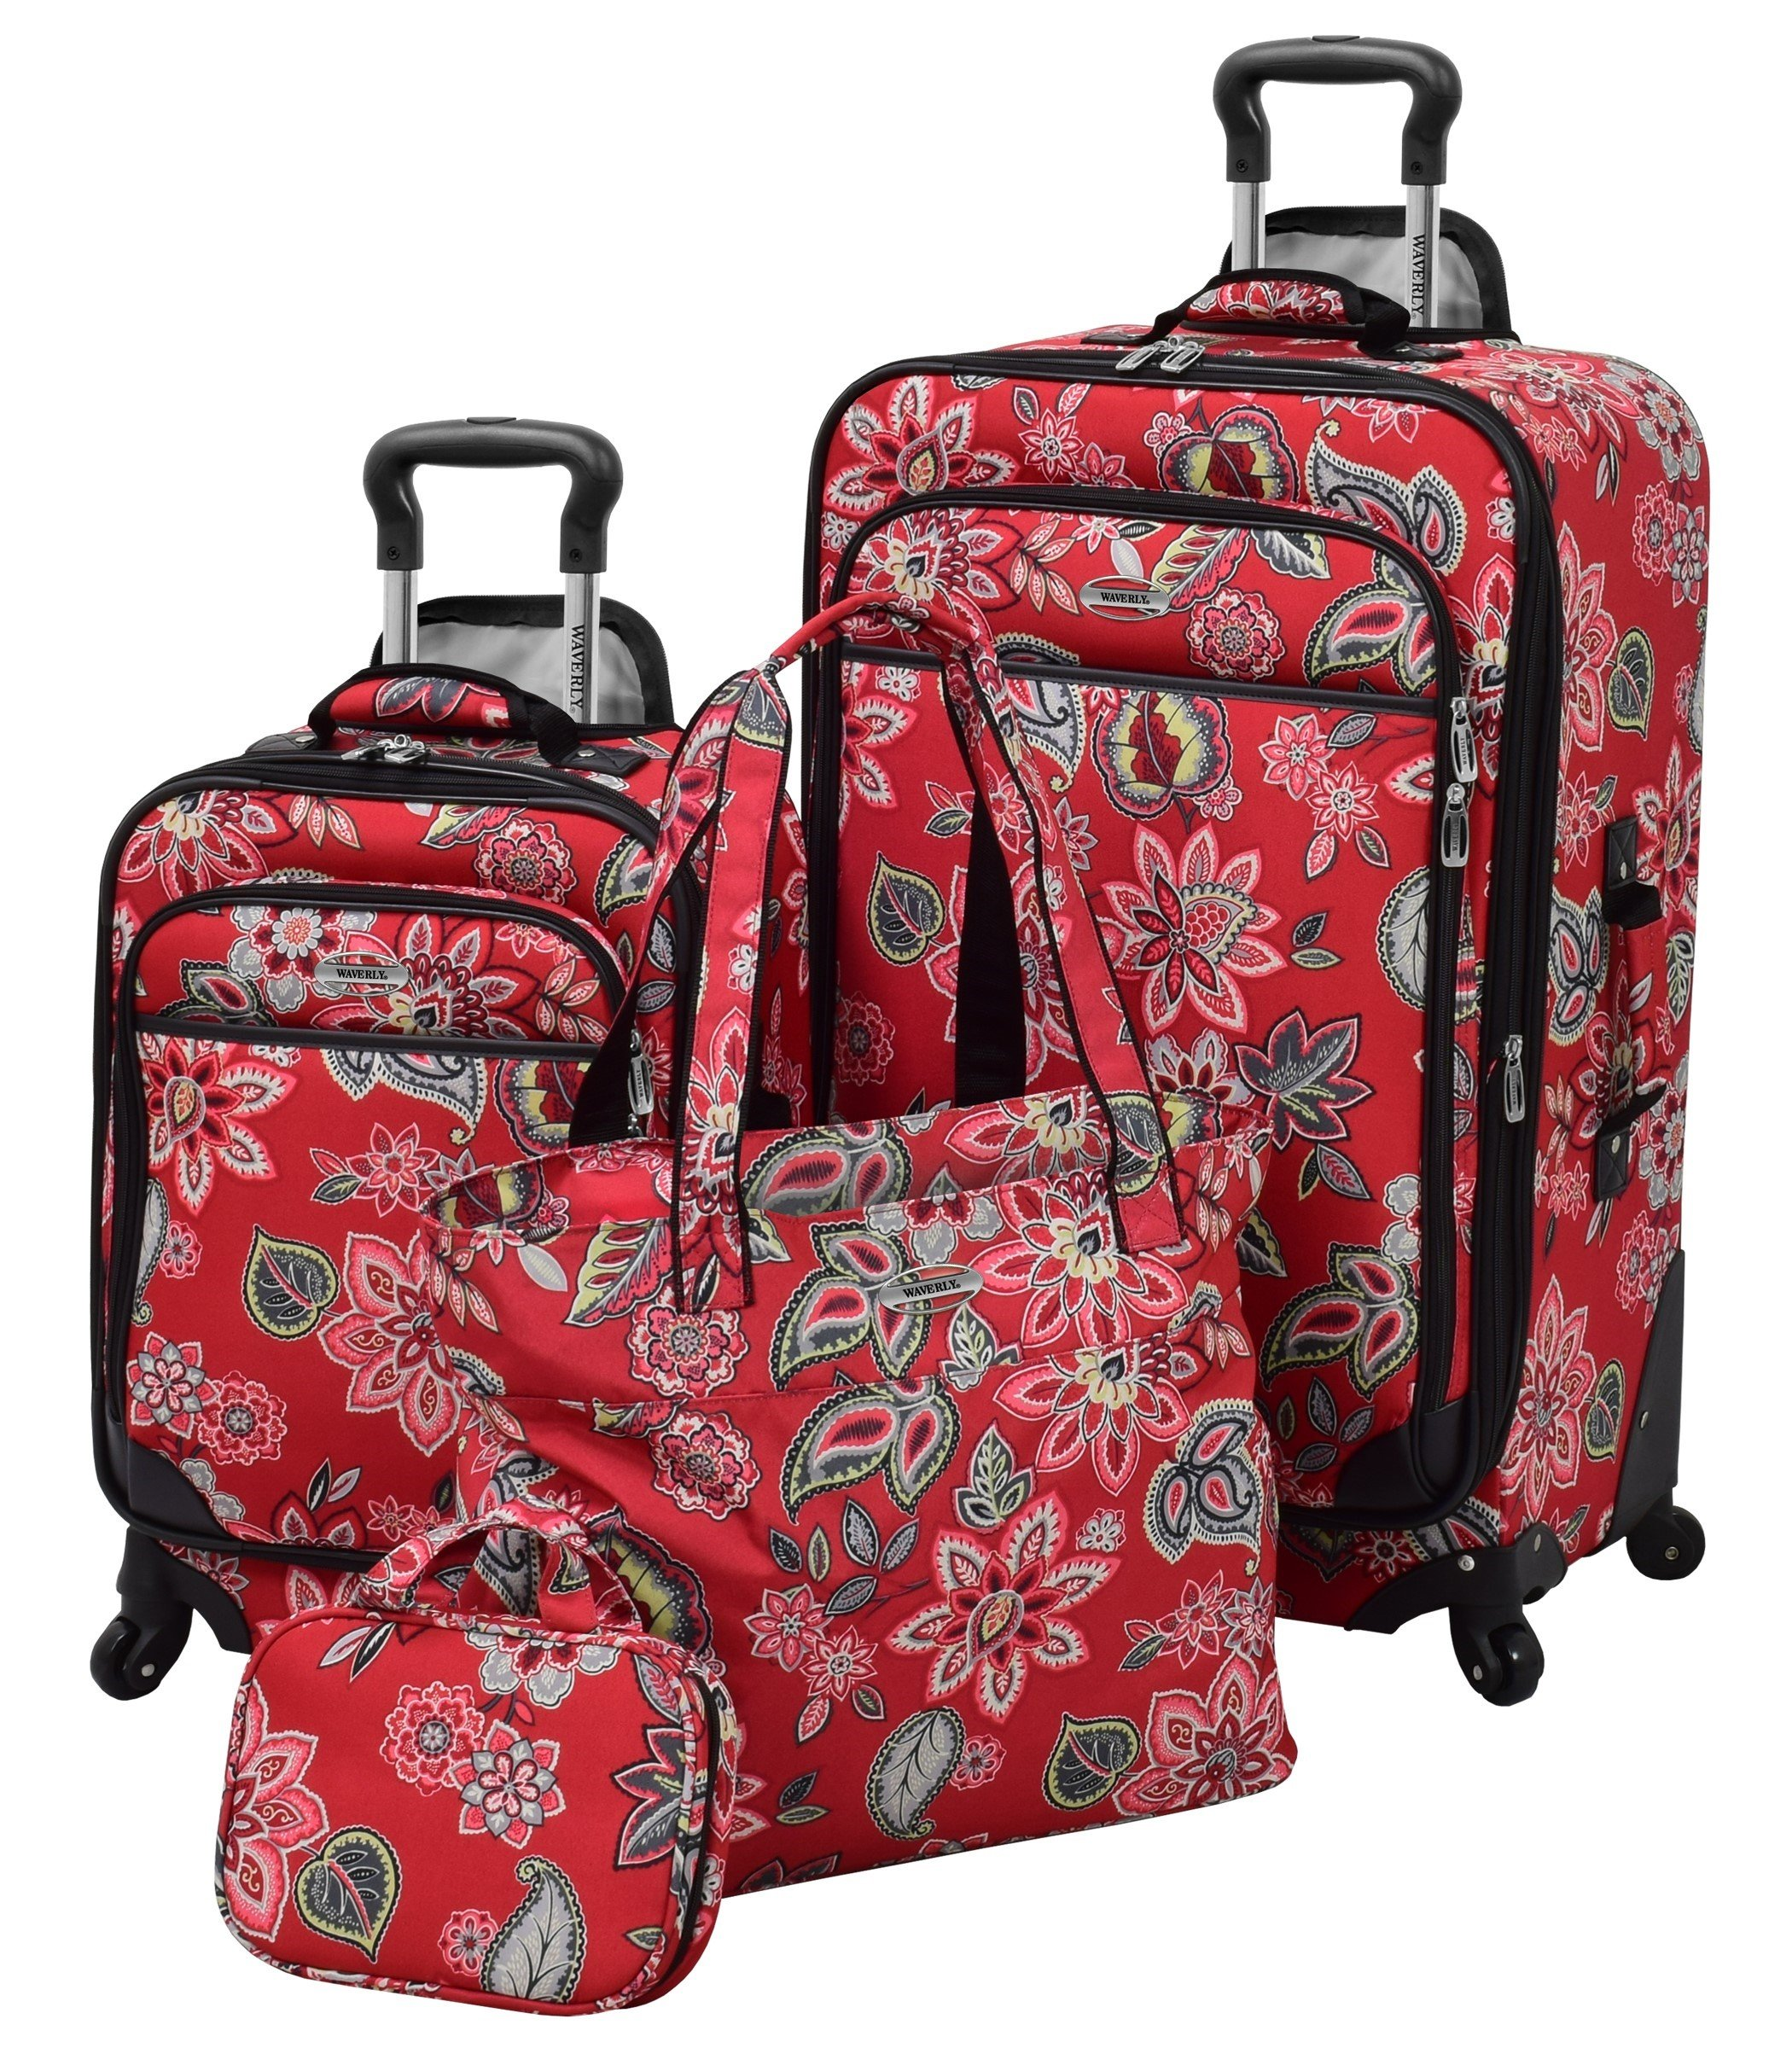 Waverly Boutique 4 Piece Set, Cherry Floral by Waverly (Image #1)